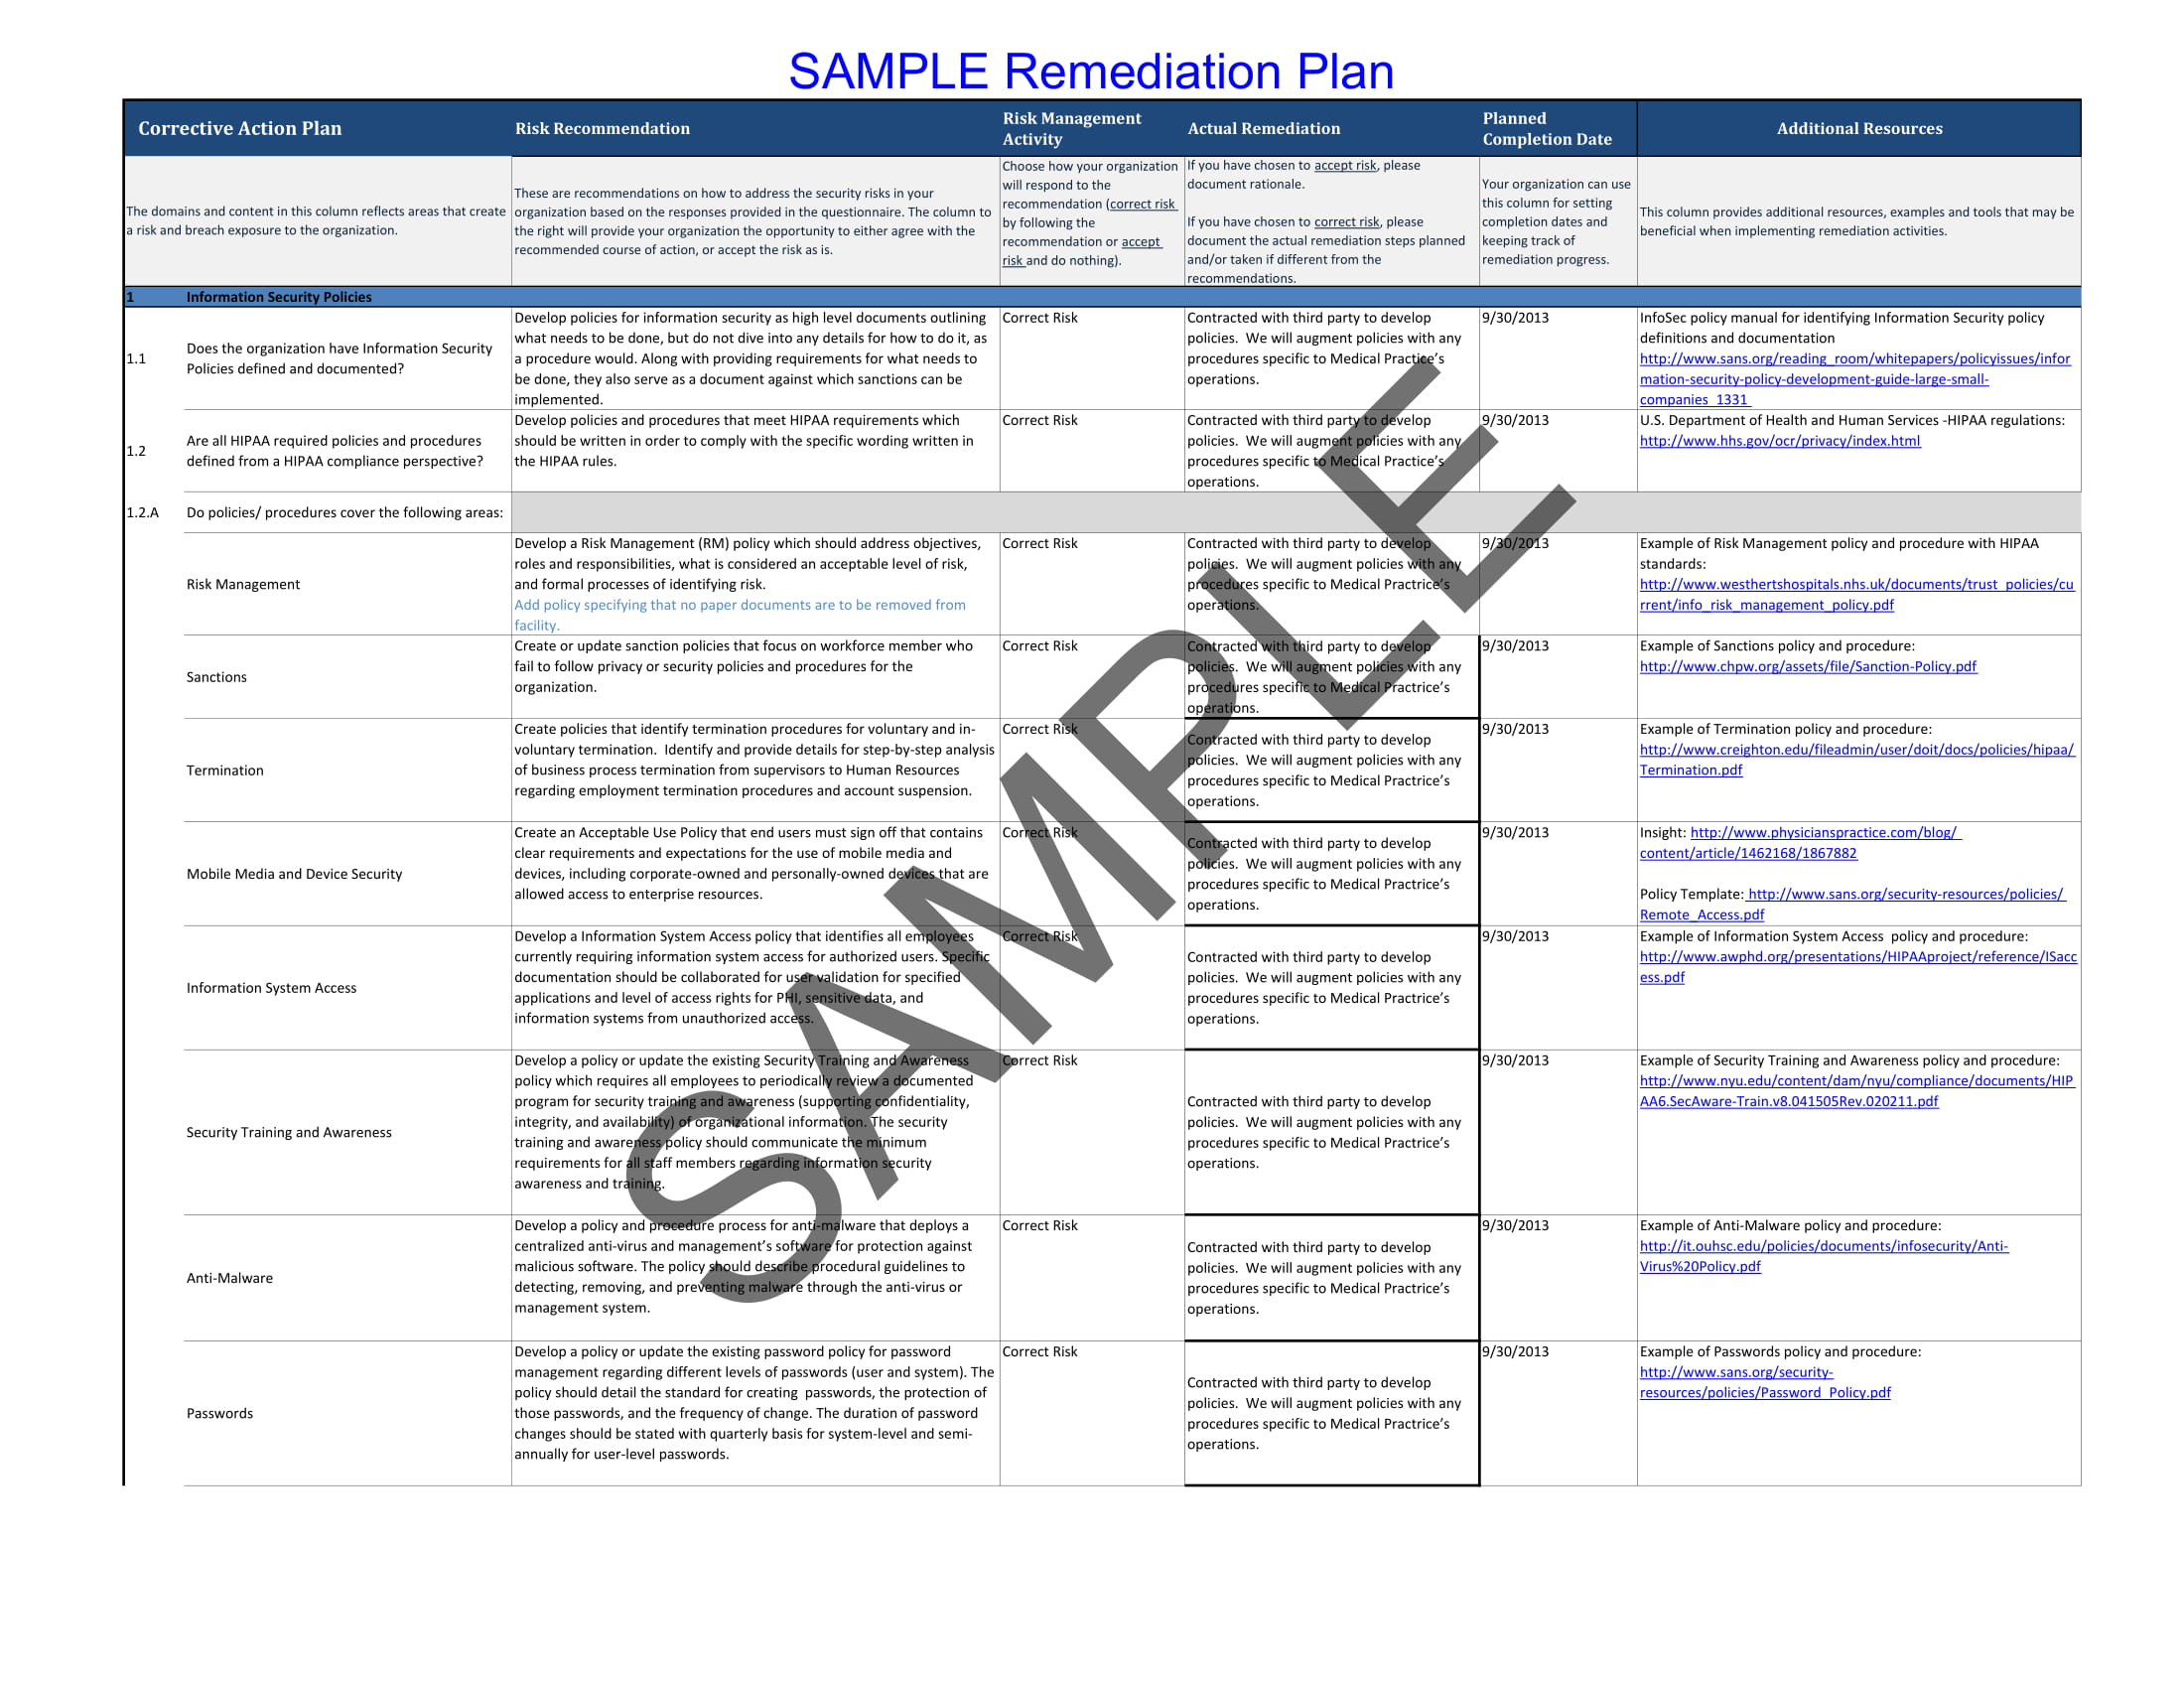 Remediation Plan Example 1